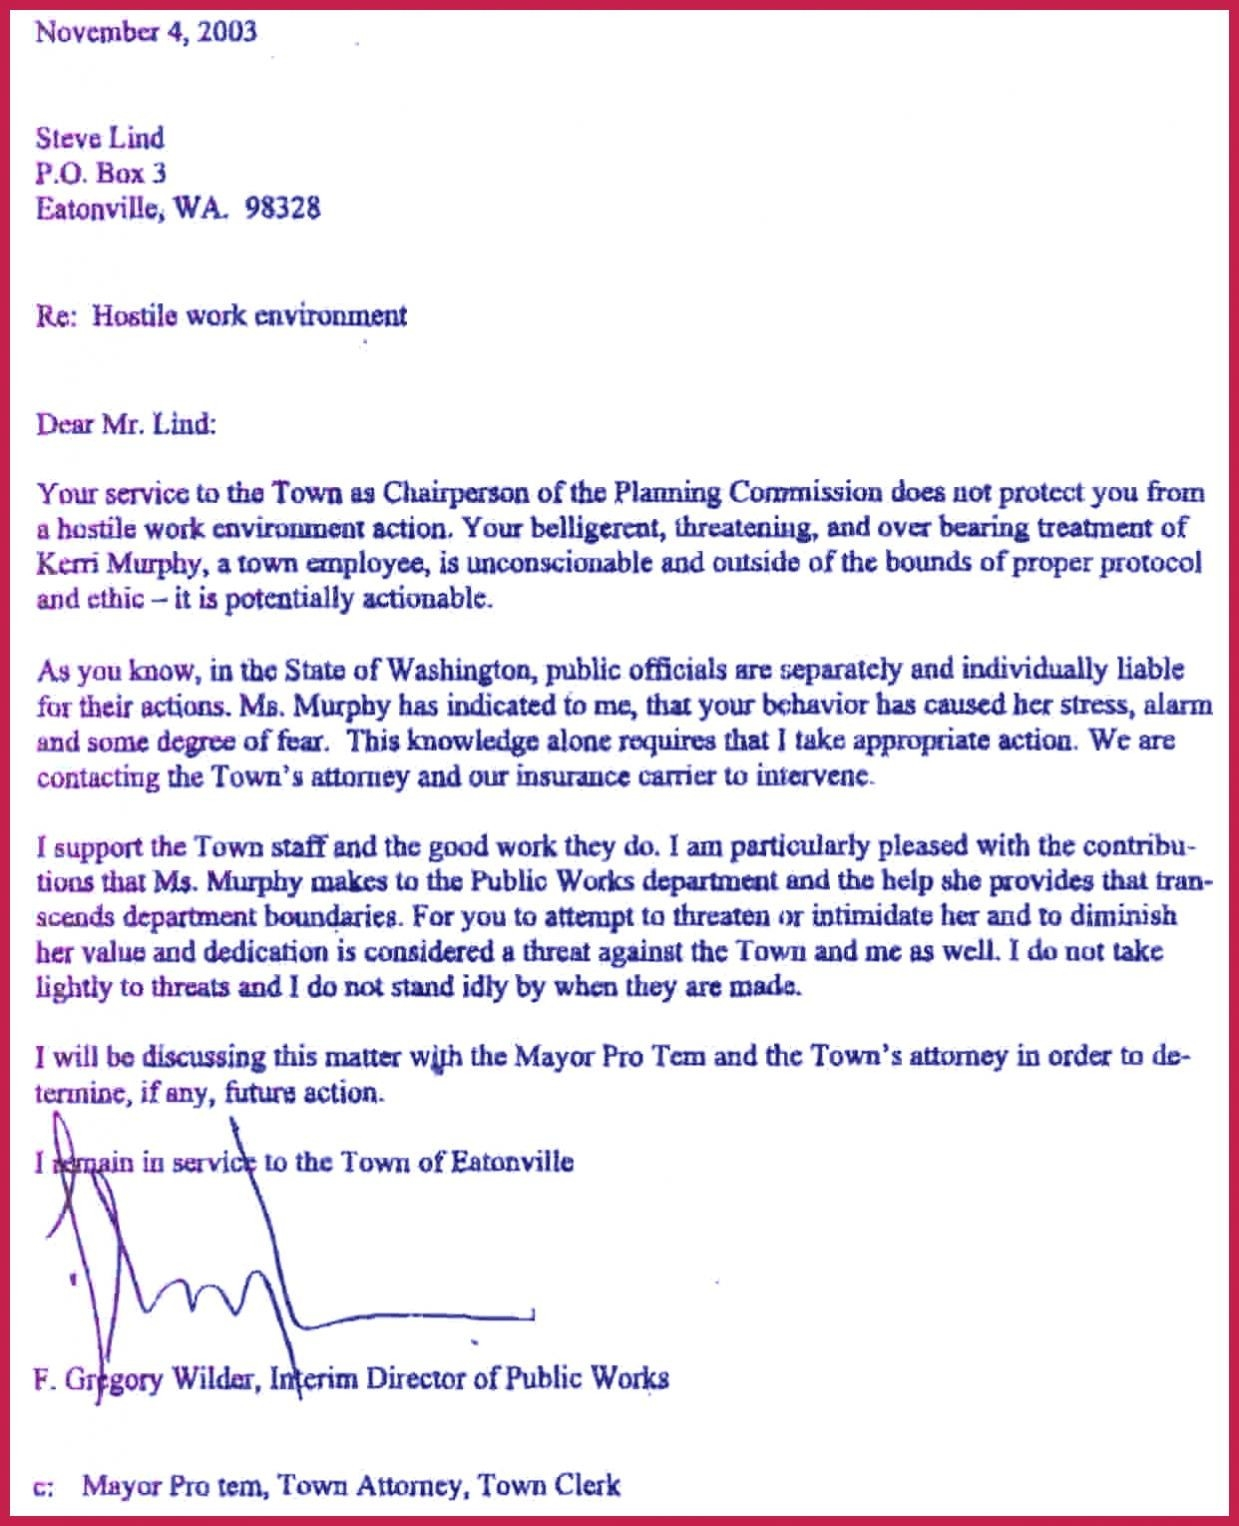 Hostile Work Environment Complaint Letter Template Samples | Letter with regard to Examples Of Hostile Work Environment 56569